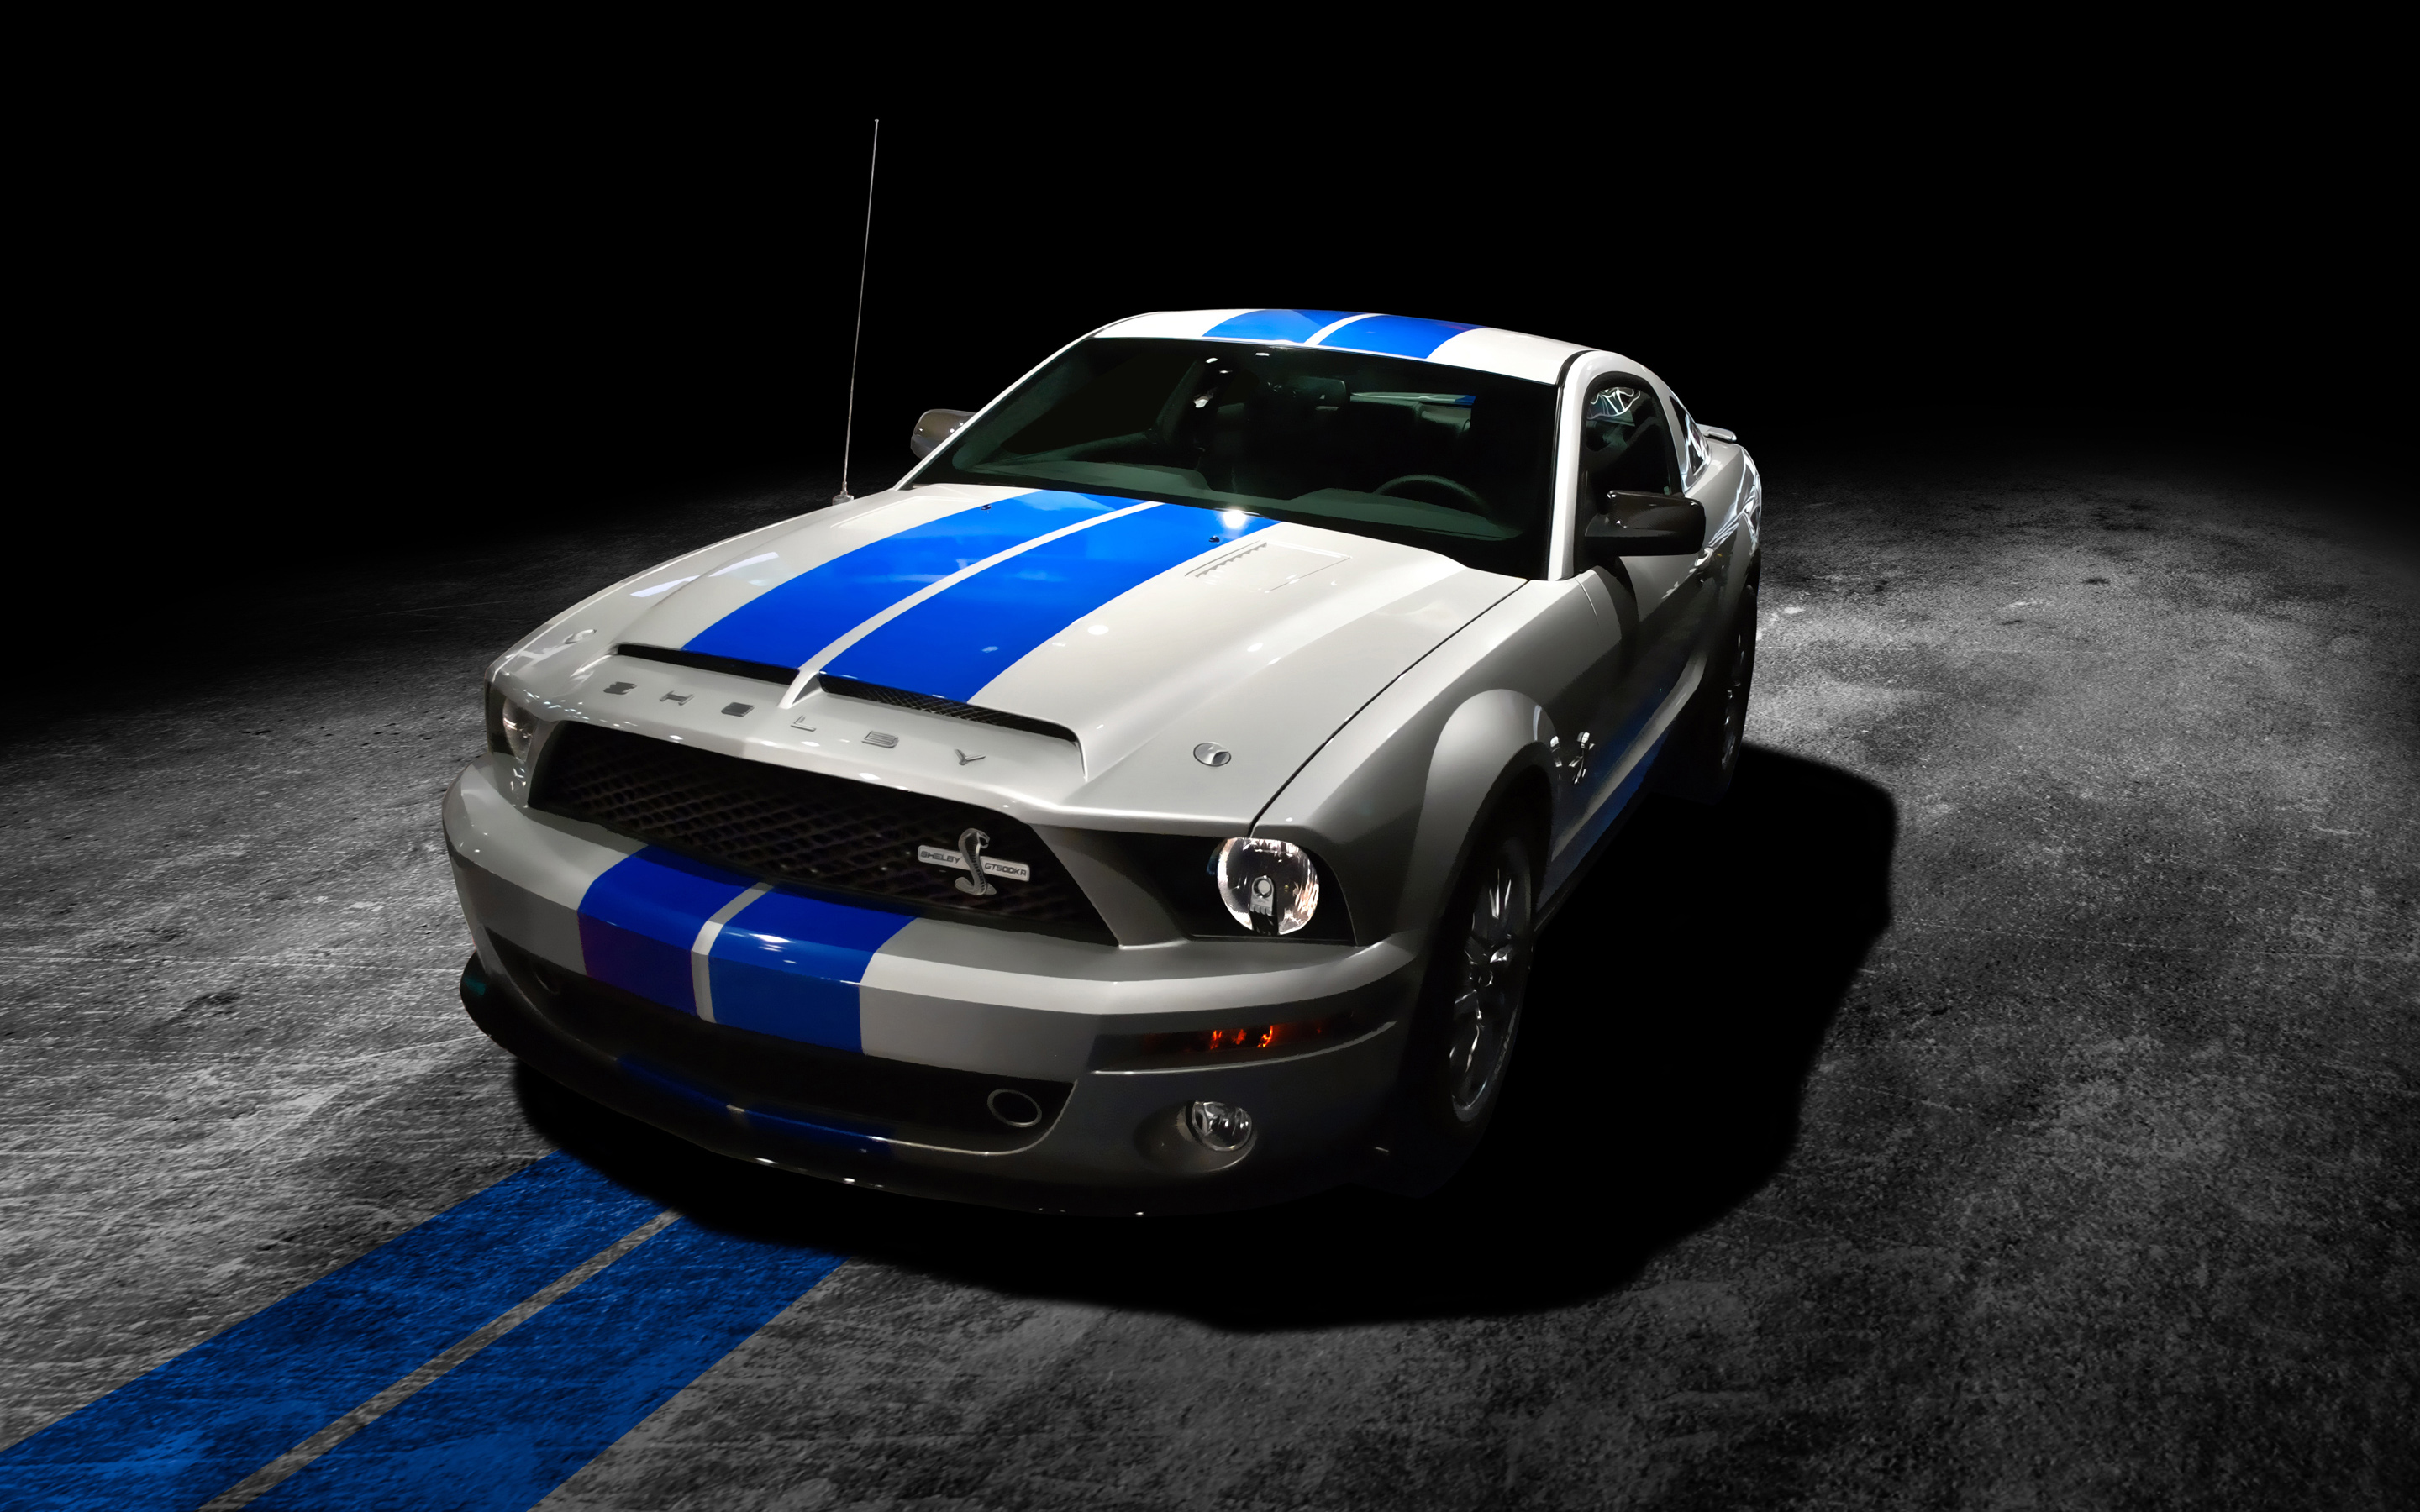 2880x1800 - Ford Mustang GT500 Wallpapers 17